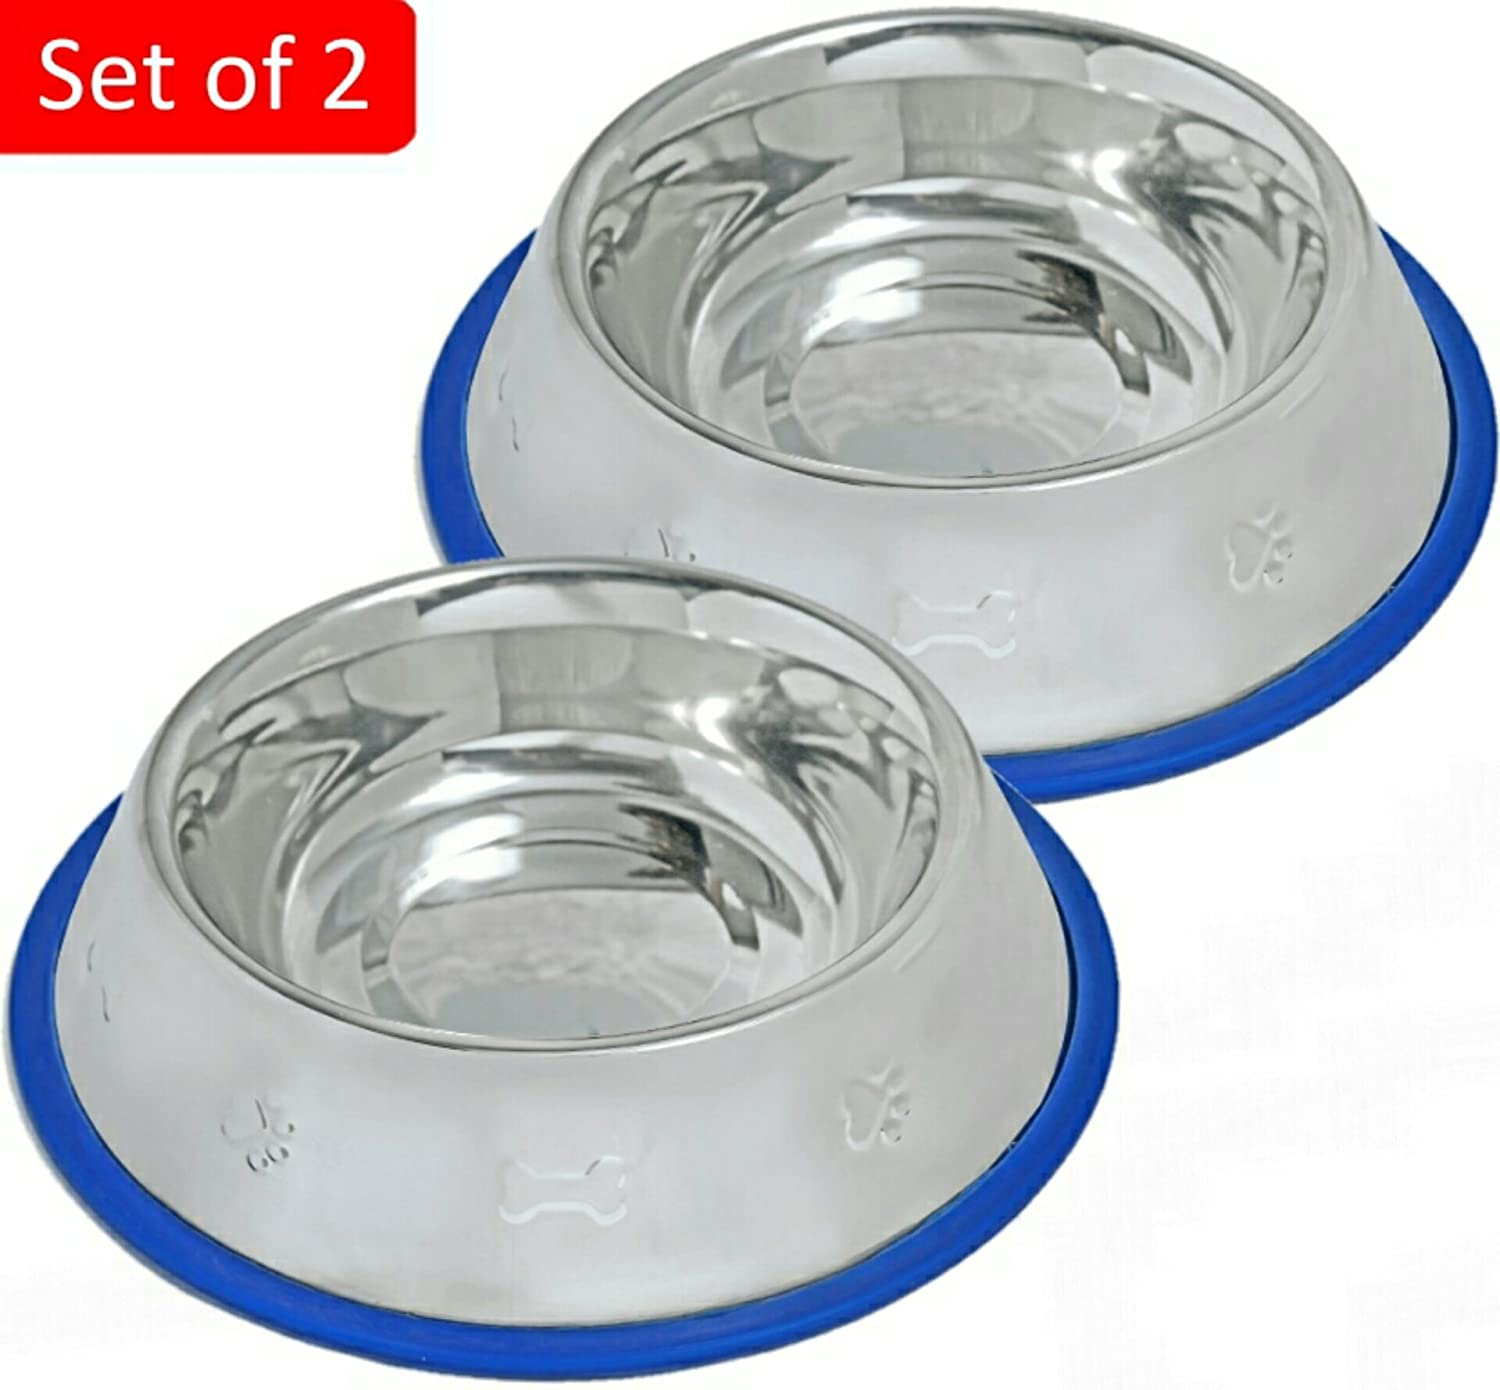 Mr. Peanut's Set of 2 Etched Stainless Steel Dog Bowls, Easy to Clean, Bacteria & Rust Resistant, with Non-Skid No-Tip Silicone Ring, Feeding Bowls for Dogs (2 Pak/32oz Each Bowl)